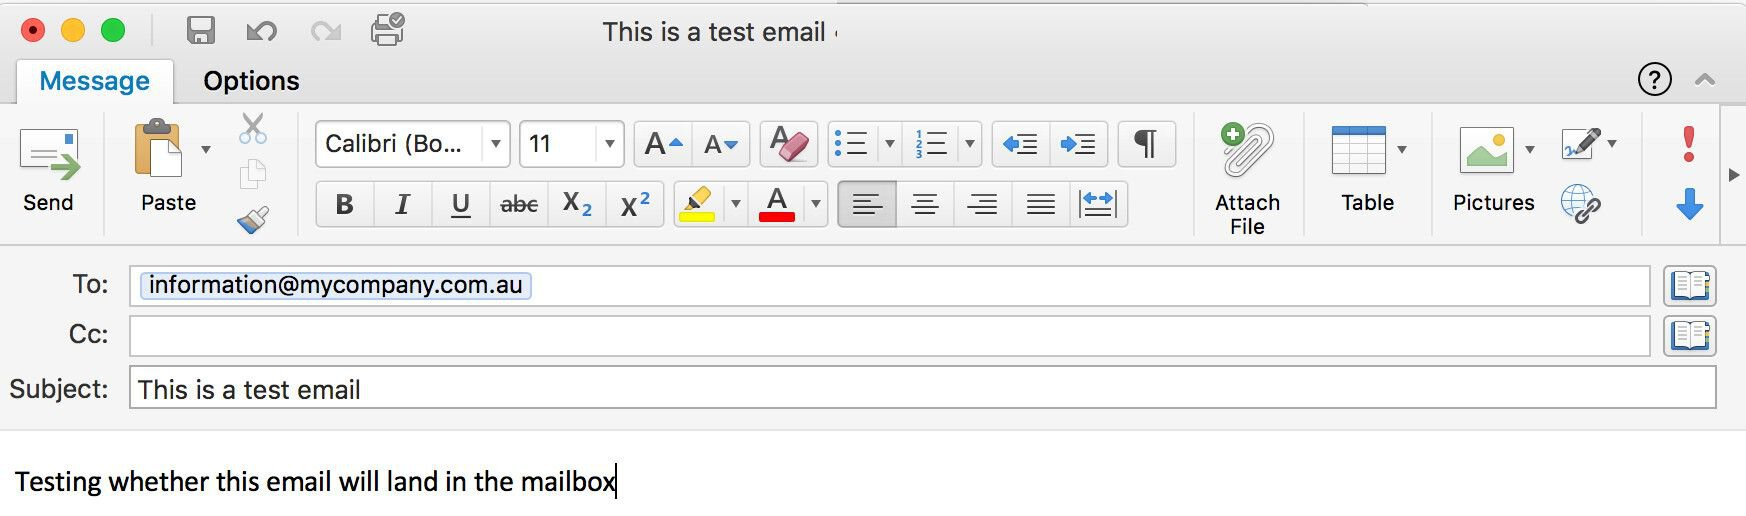 Setting Up an Email Server for the Direct Email Spooling Attack